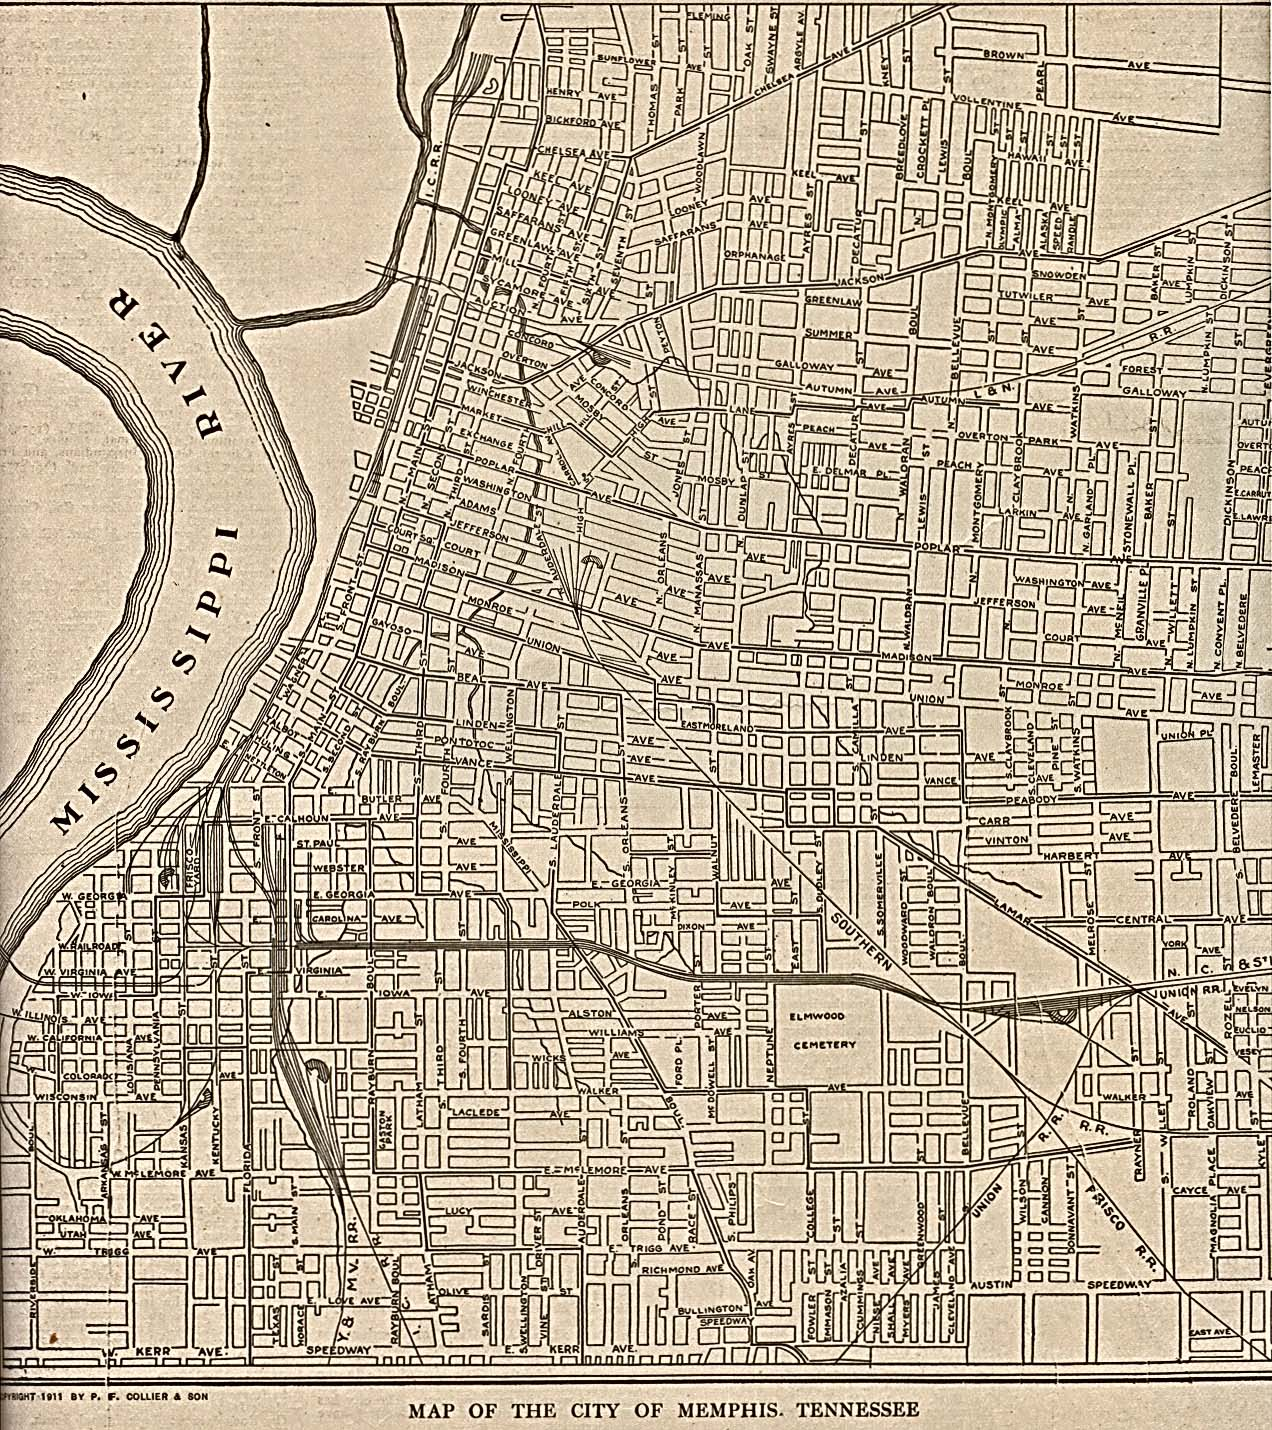 Maps of Memphis City Map, Tennessee, United States 1911 - mapa.owje.com